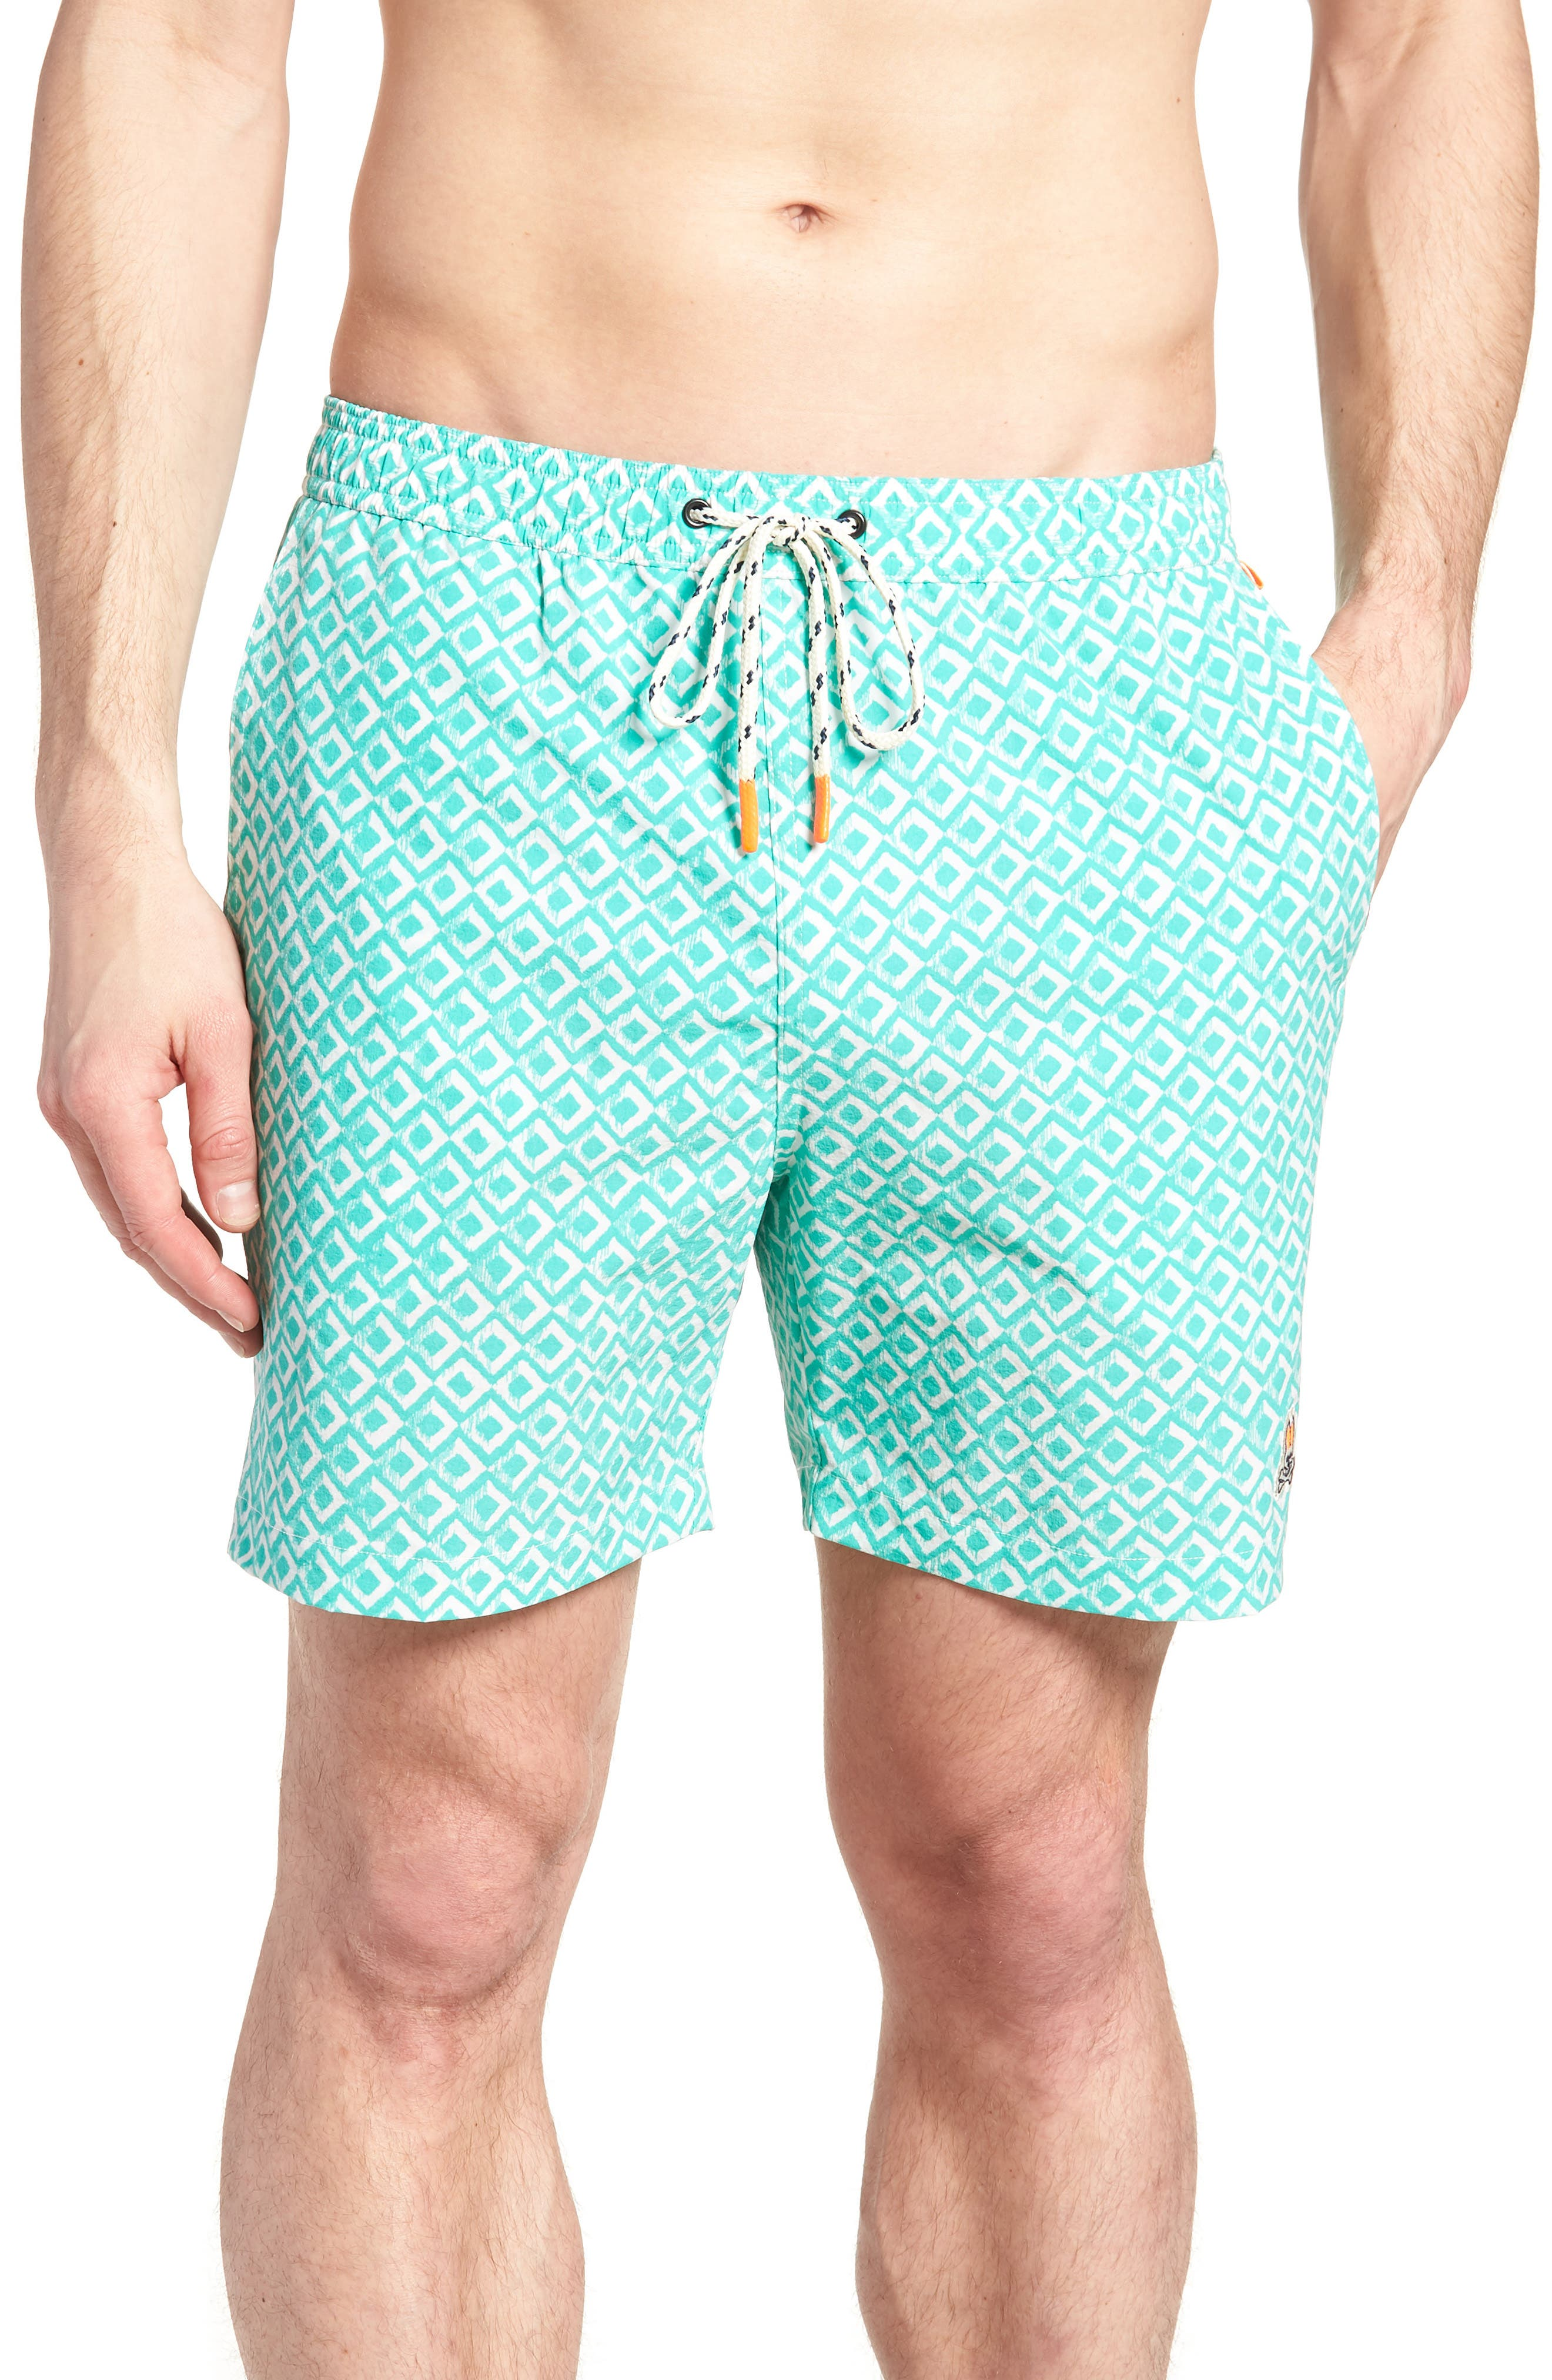 Drippy Diamond Swim Trunks,                         Main,                         color, 300